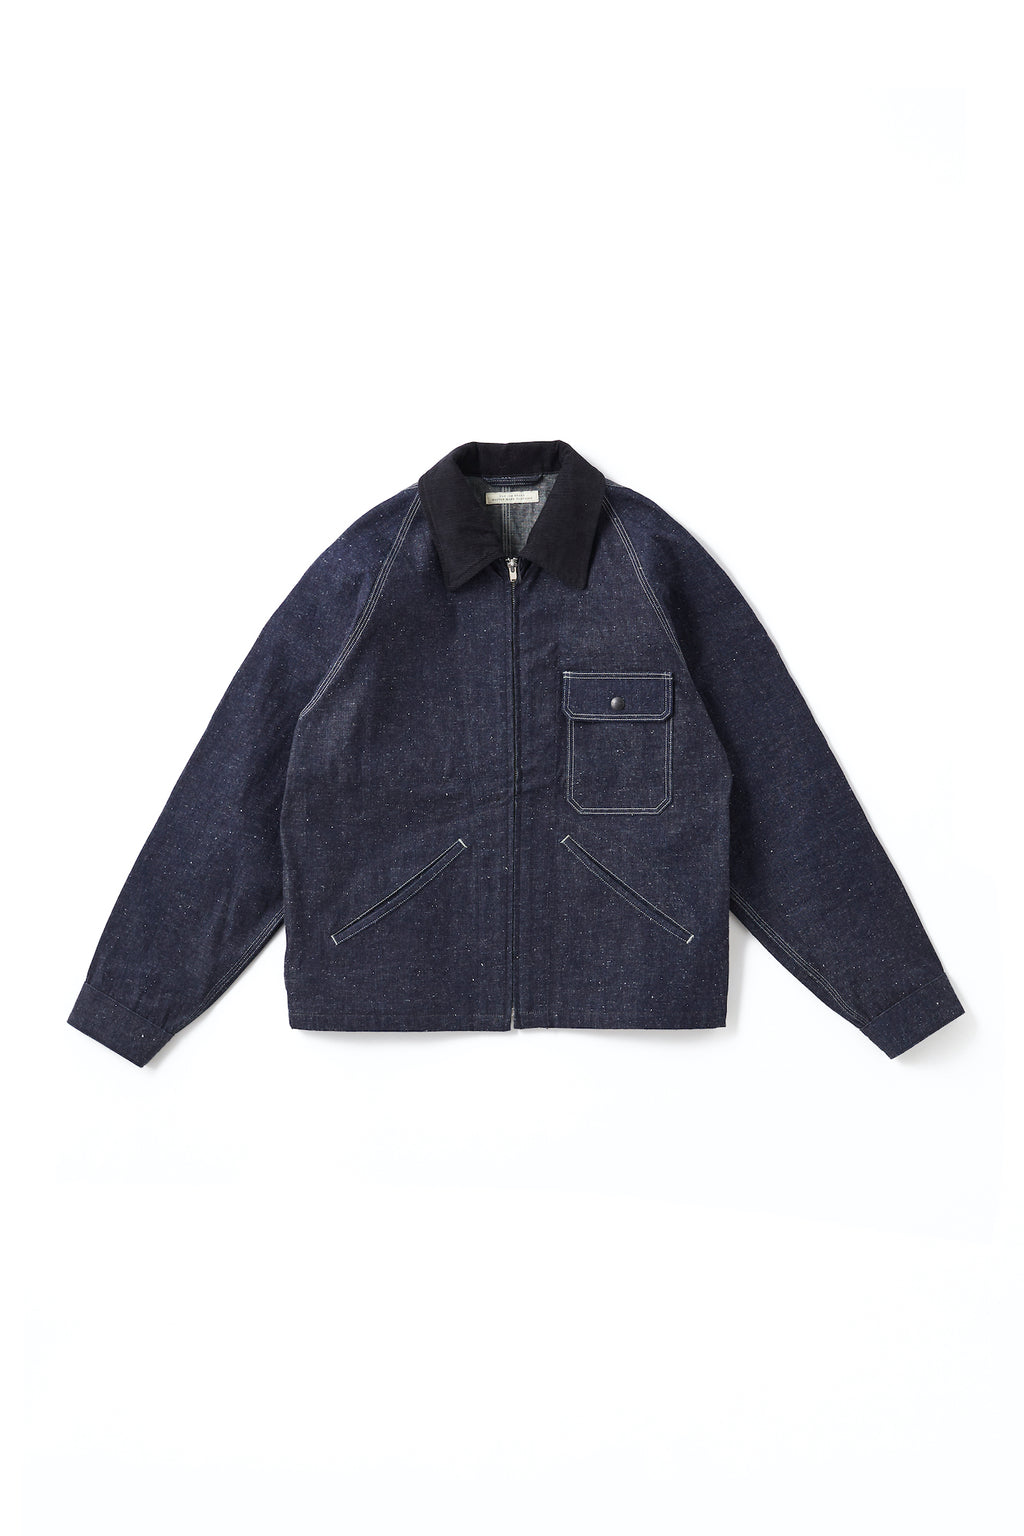 ROLL COLLAR ZIP JACKET - 201OJ-JK04